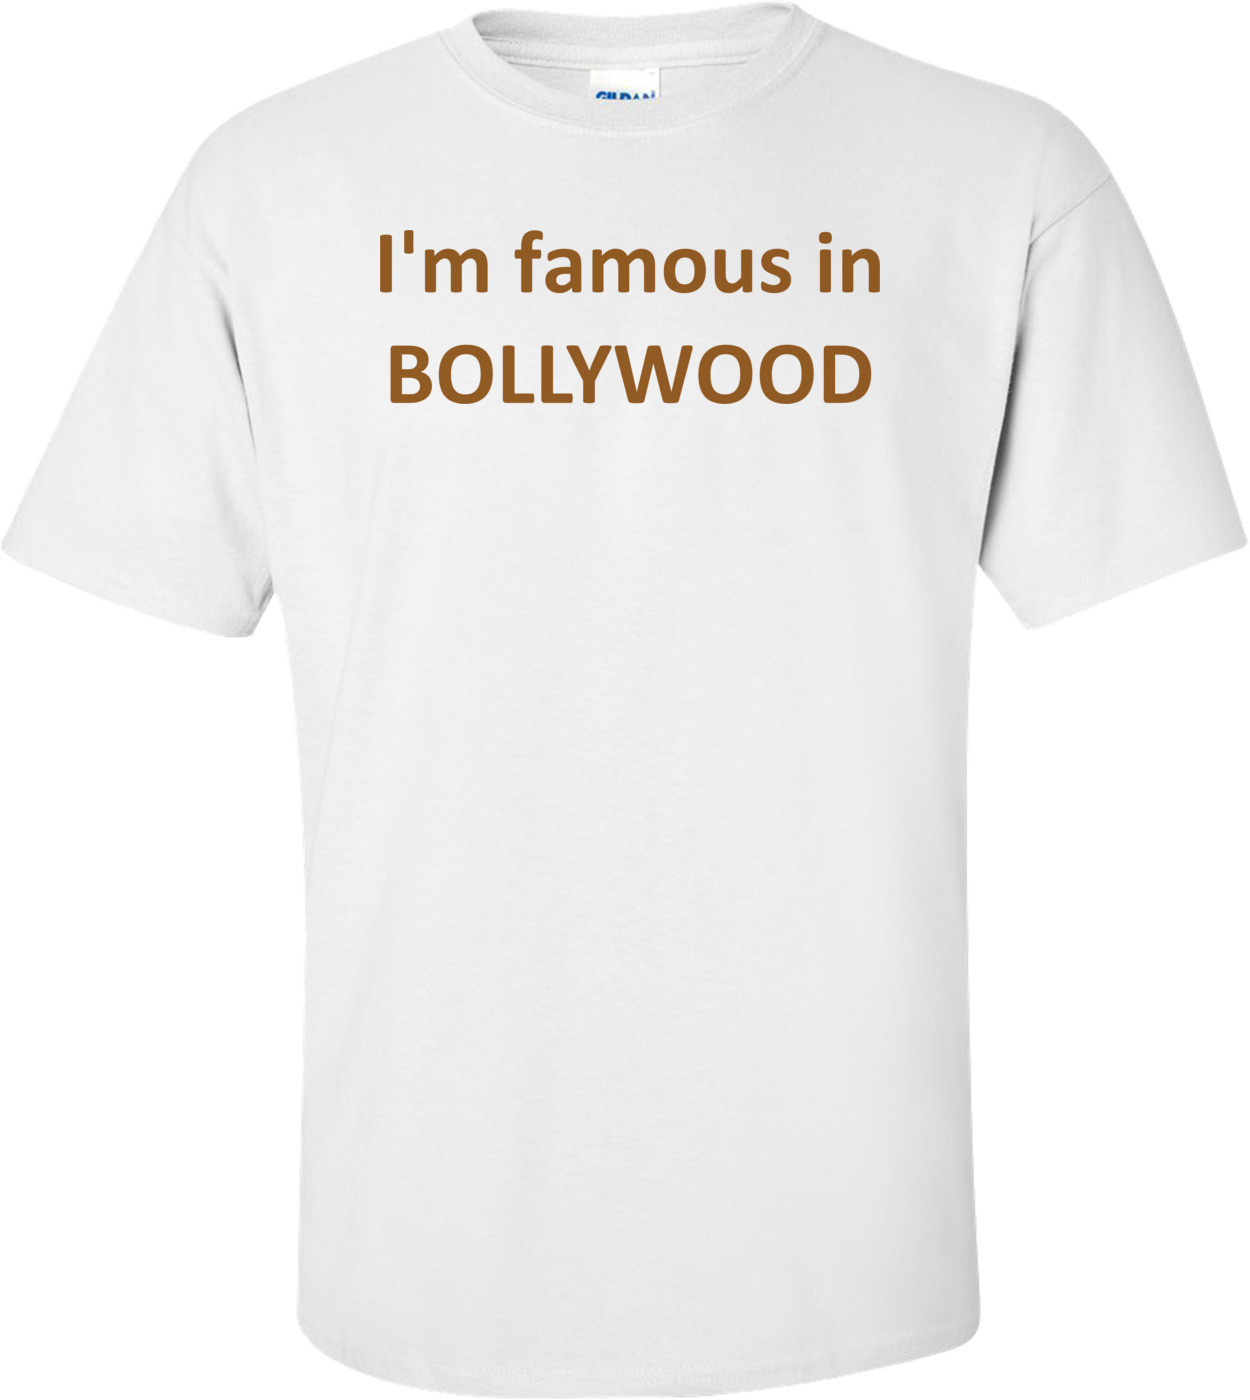 I'm famous in BOLLYWOOD Shirt